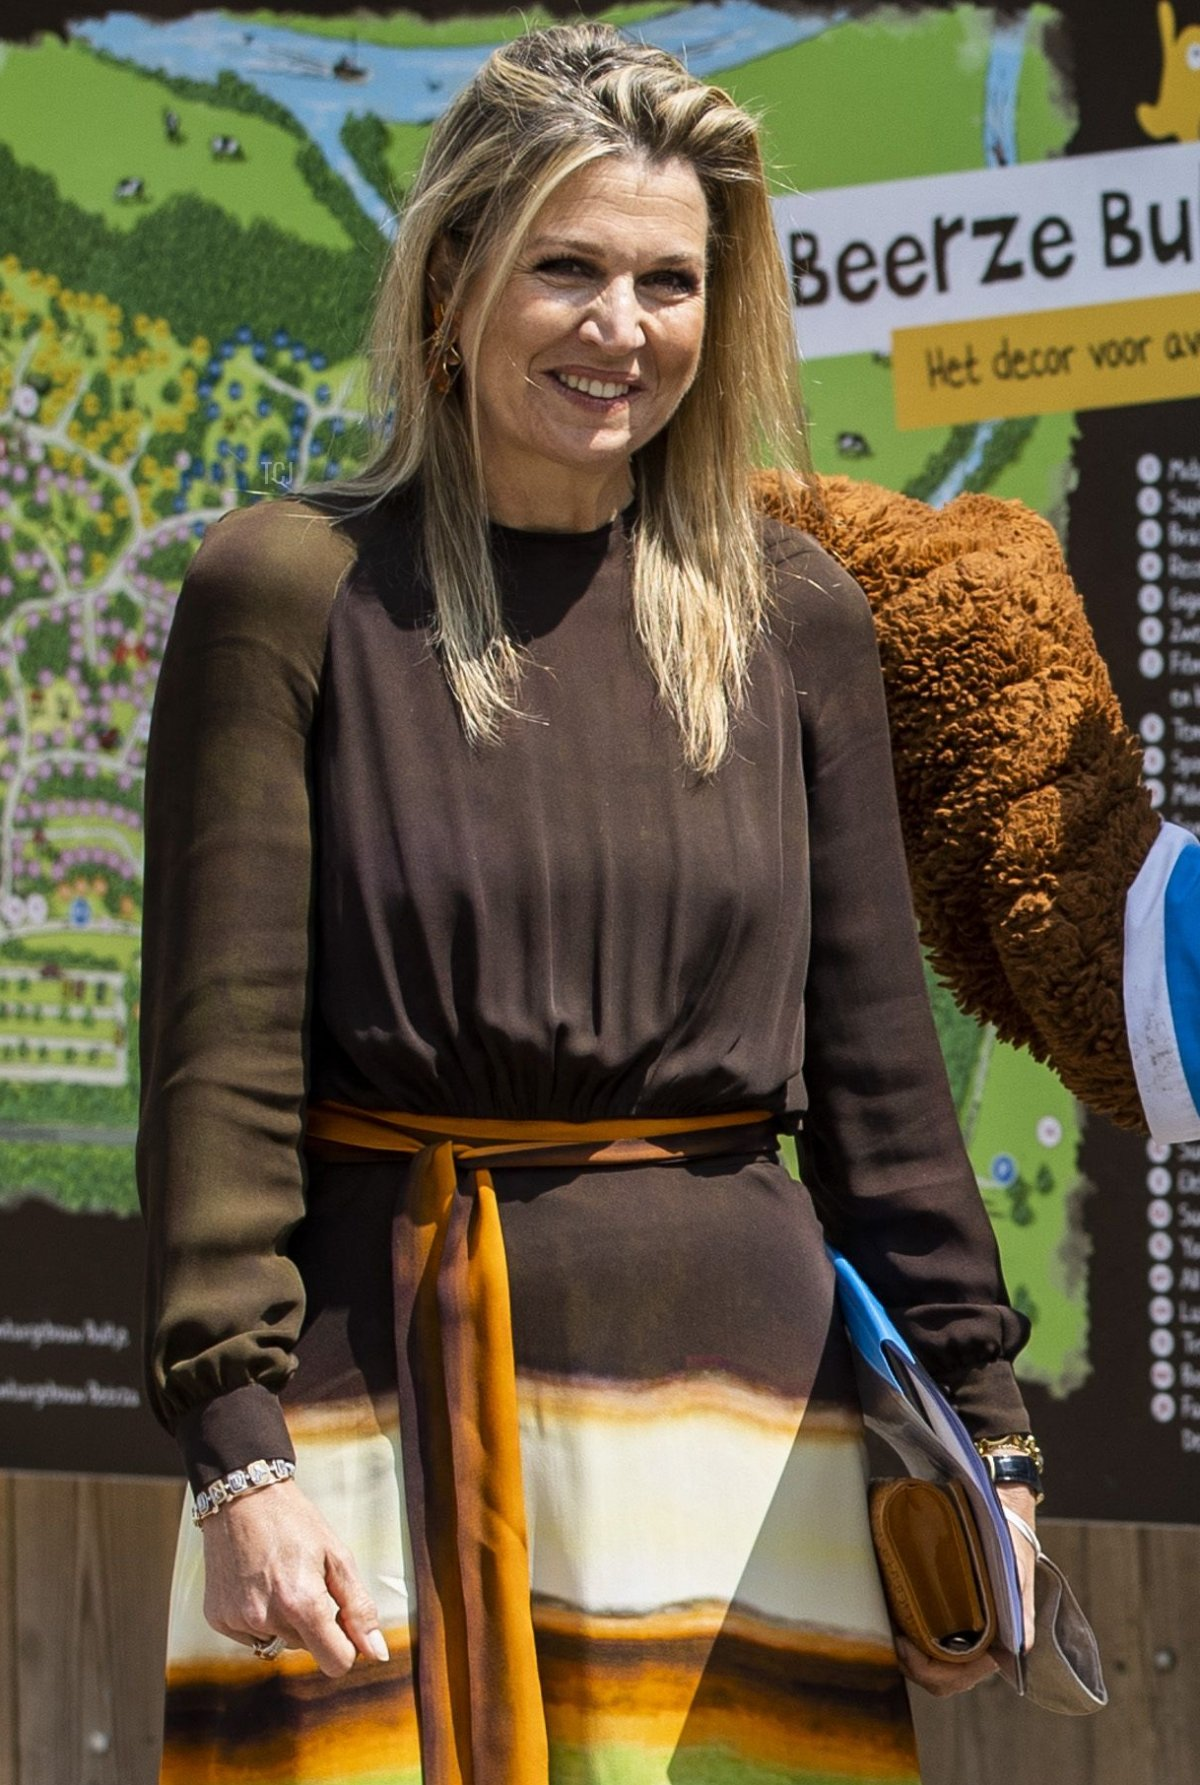 Queen Maxima (L) arrives at the Holiday Park Beerze Bulten during a visit to the Zwolle region on the theme of developments in the labor market, on June 8, 2021